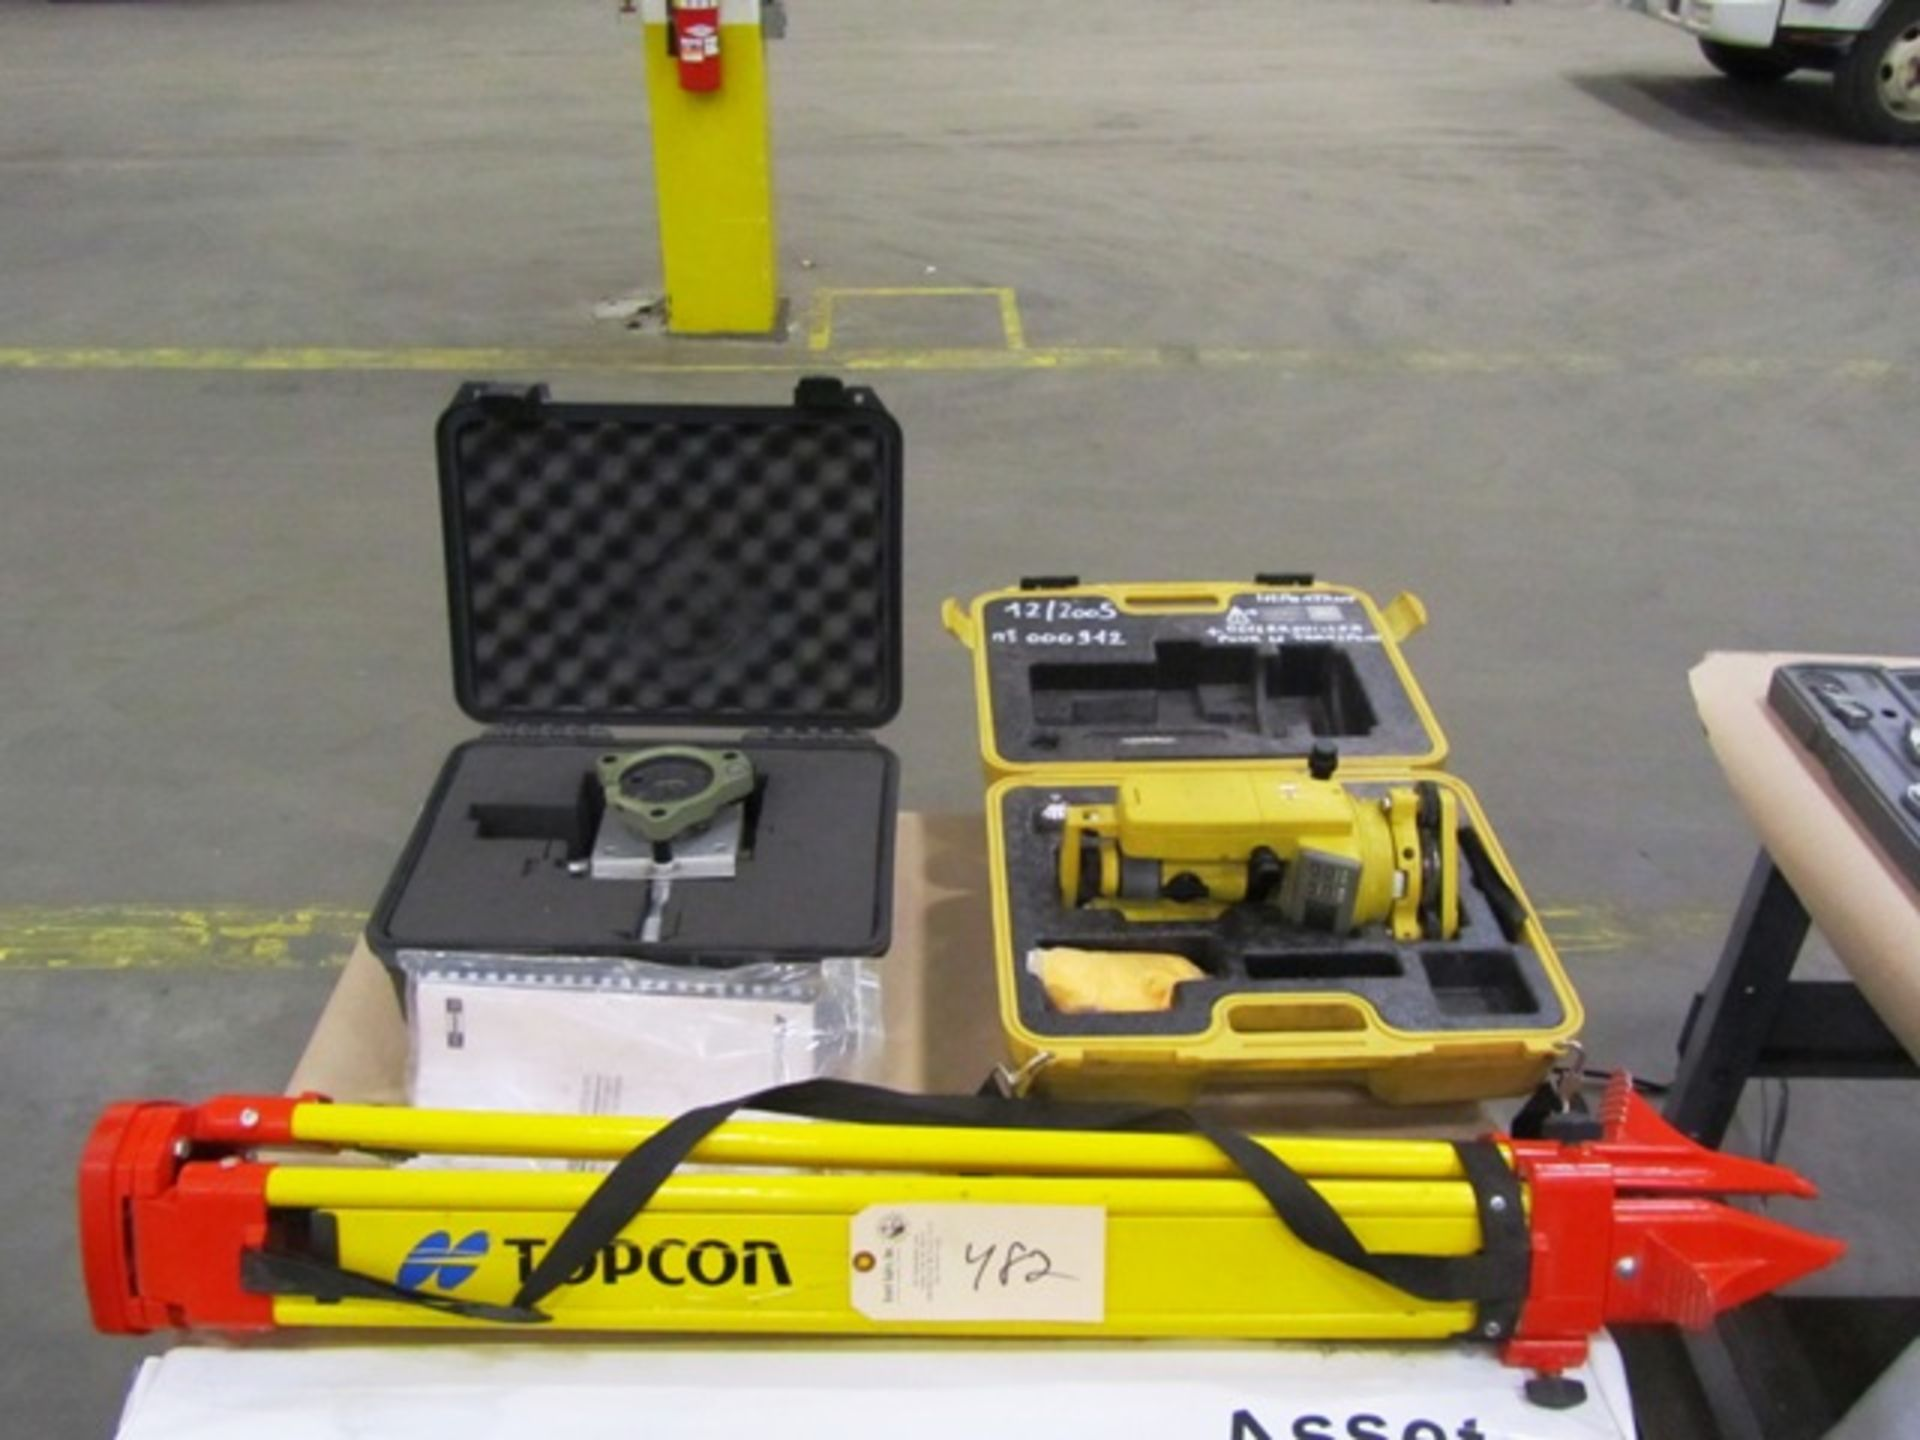 (1) Topcom Series DT-200 Laser Level & (1) Topocenter Level Unit with Tripod